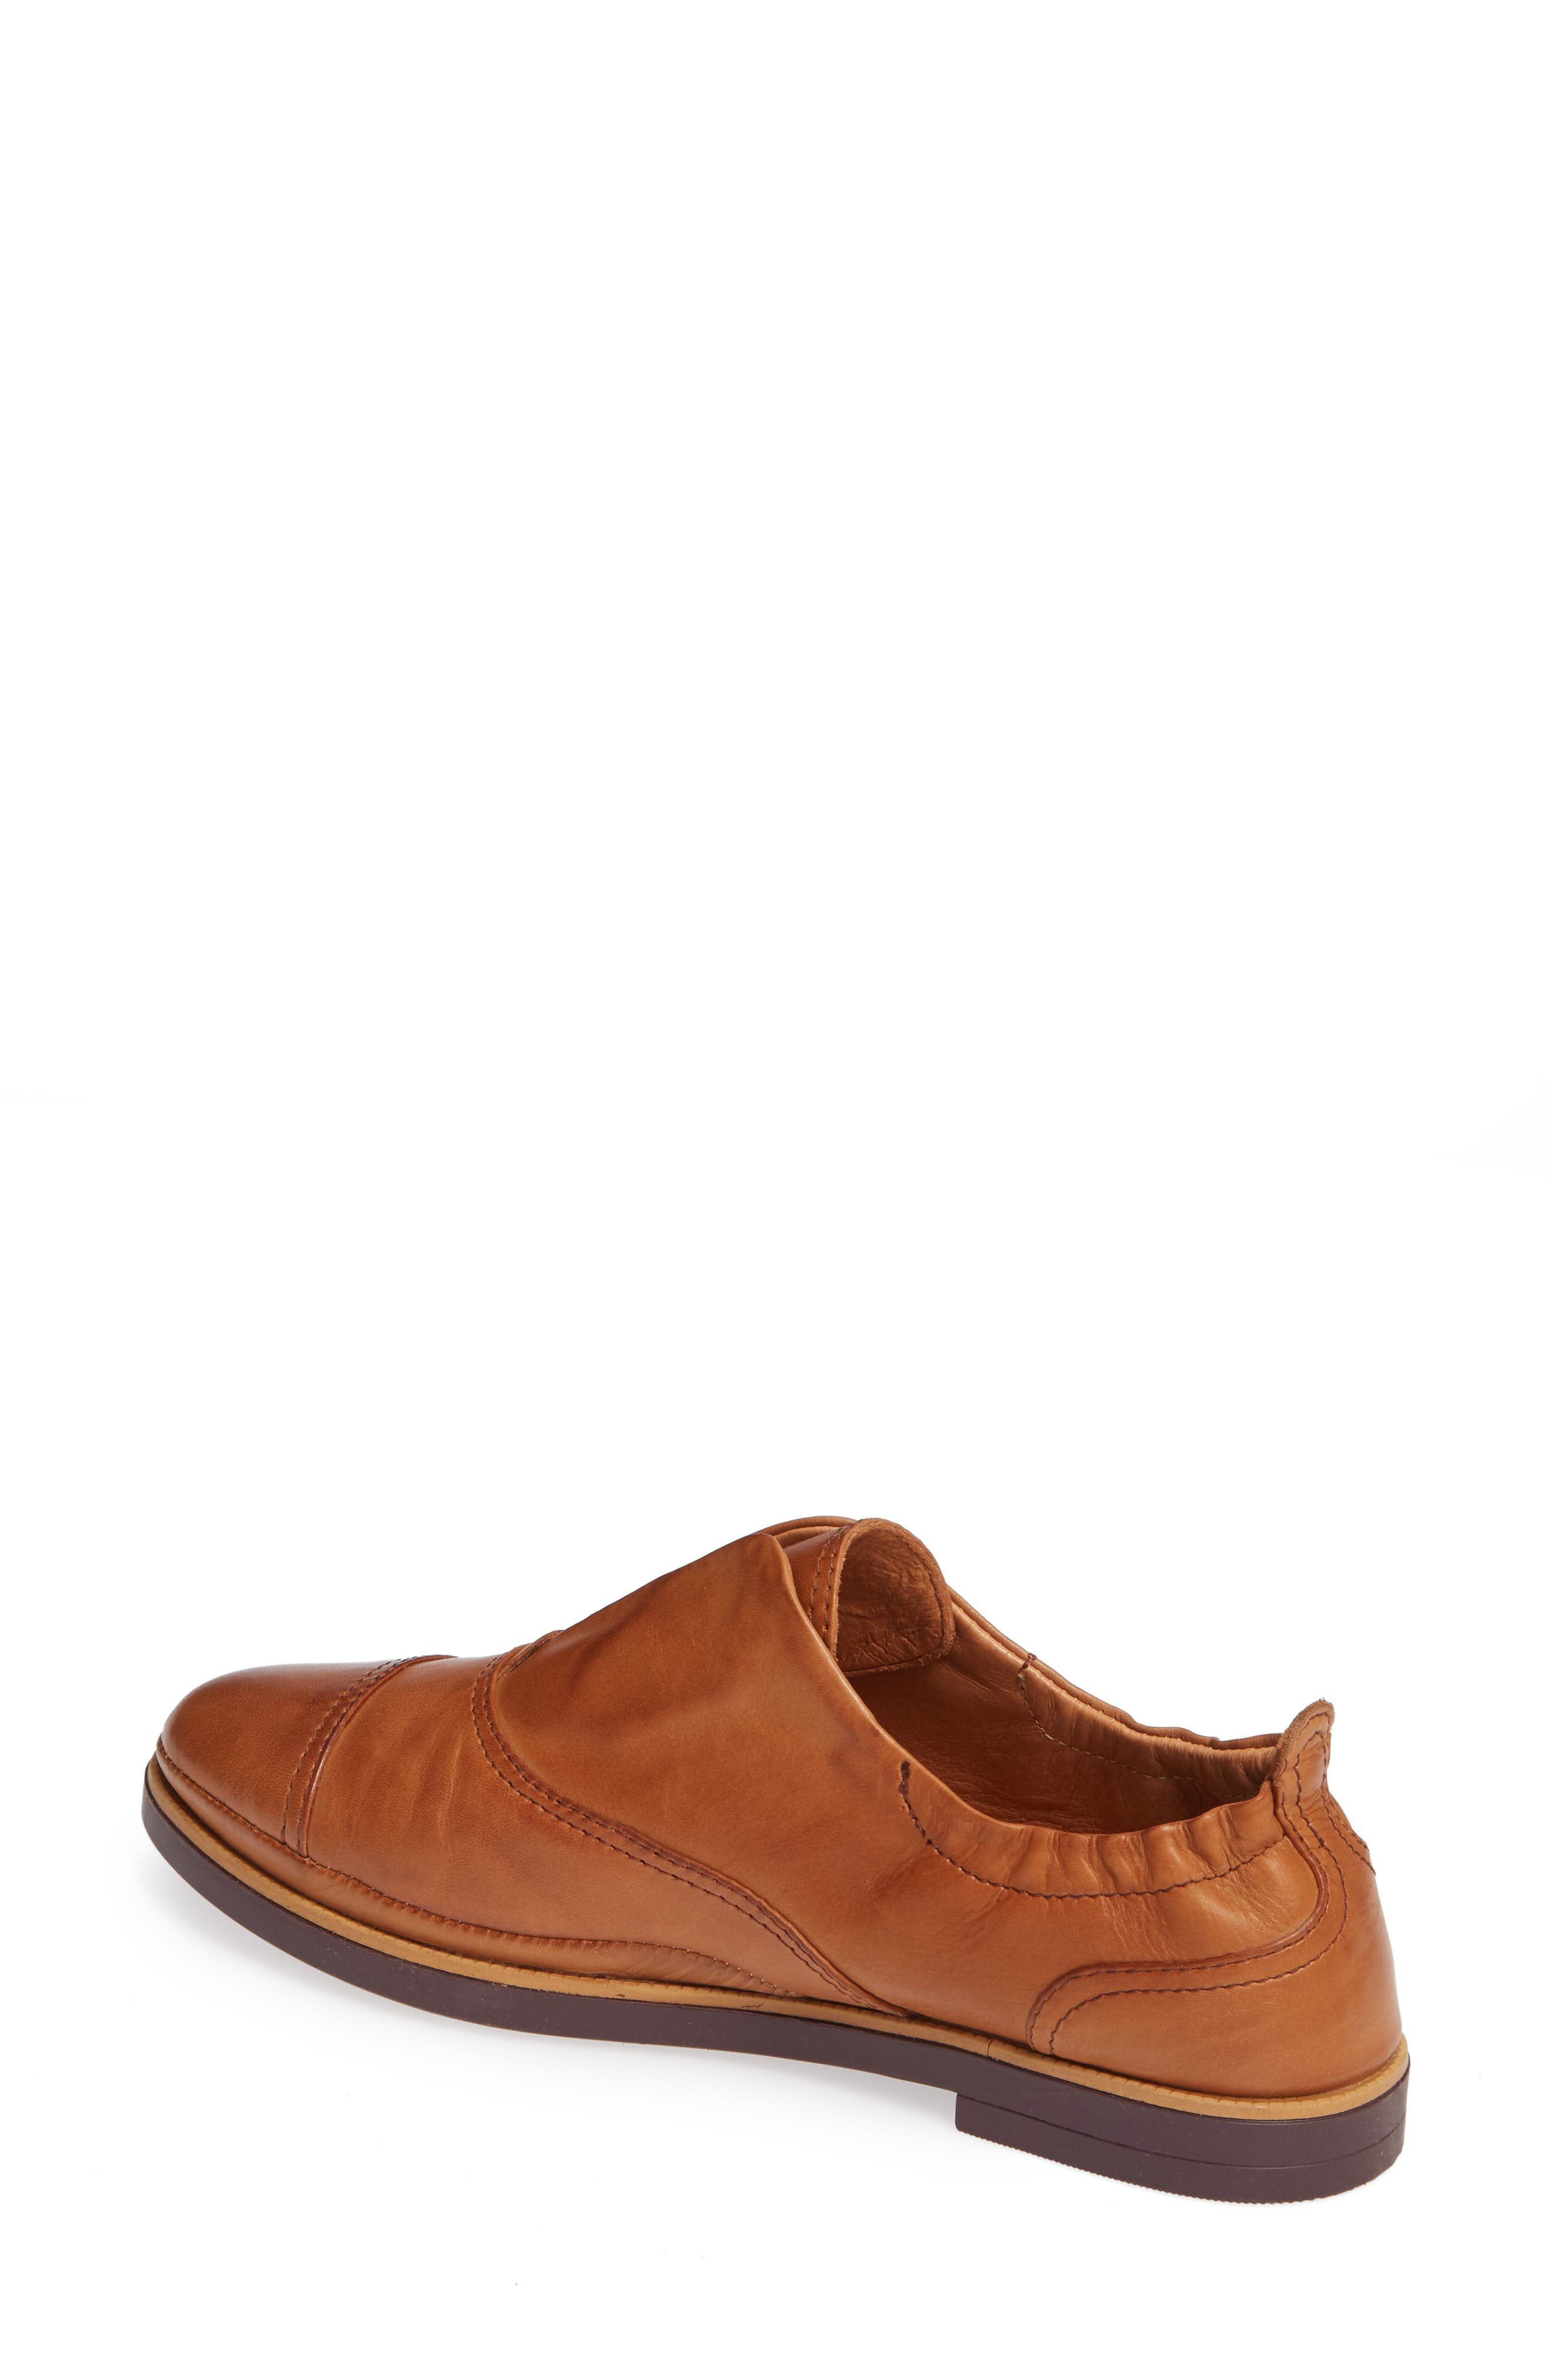 Santorini Colorblock Laceless Oxford,                             Alternate thumbnail 2, color,                             BRANDY LEATHER